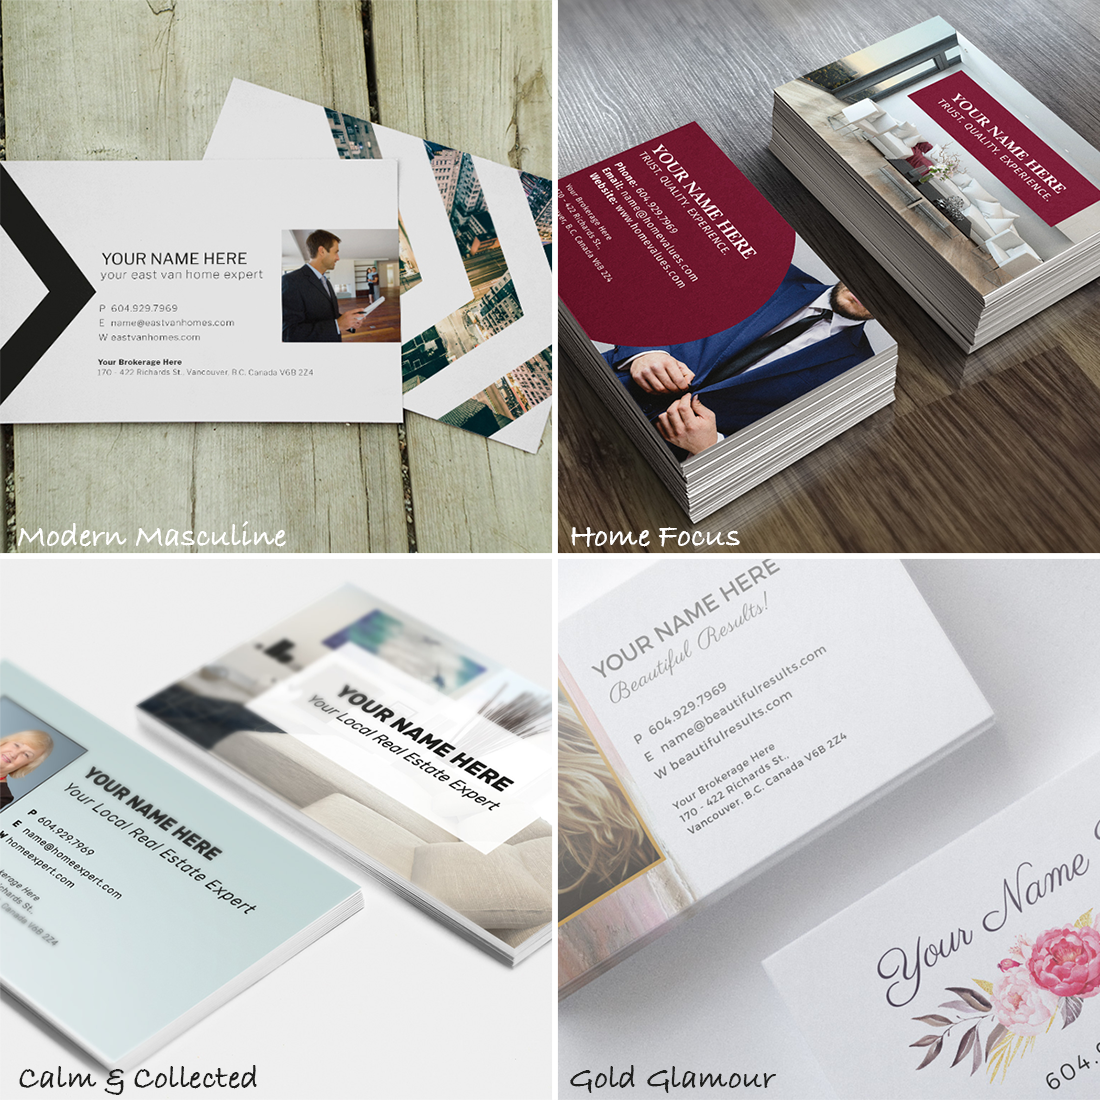 Customize 1 of these 4 REALTOR® business card designs for your business